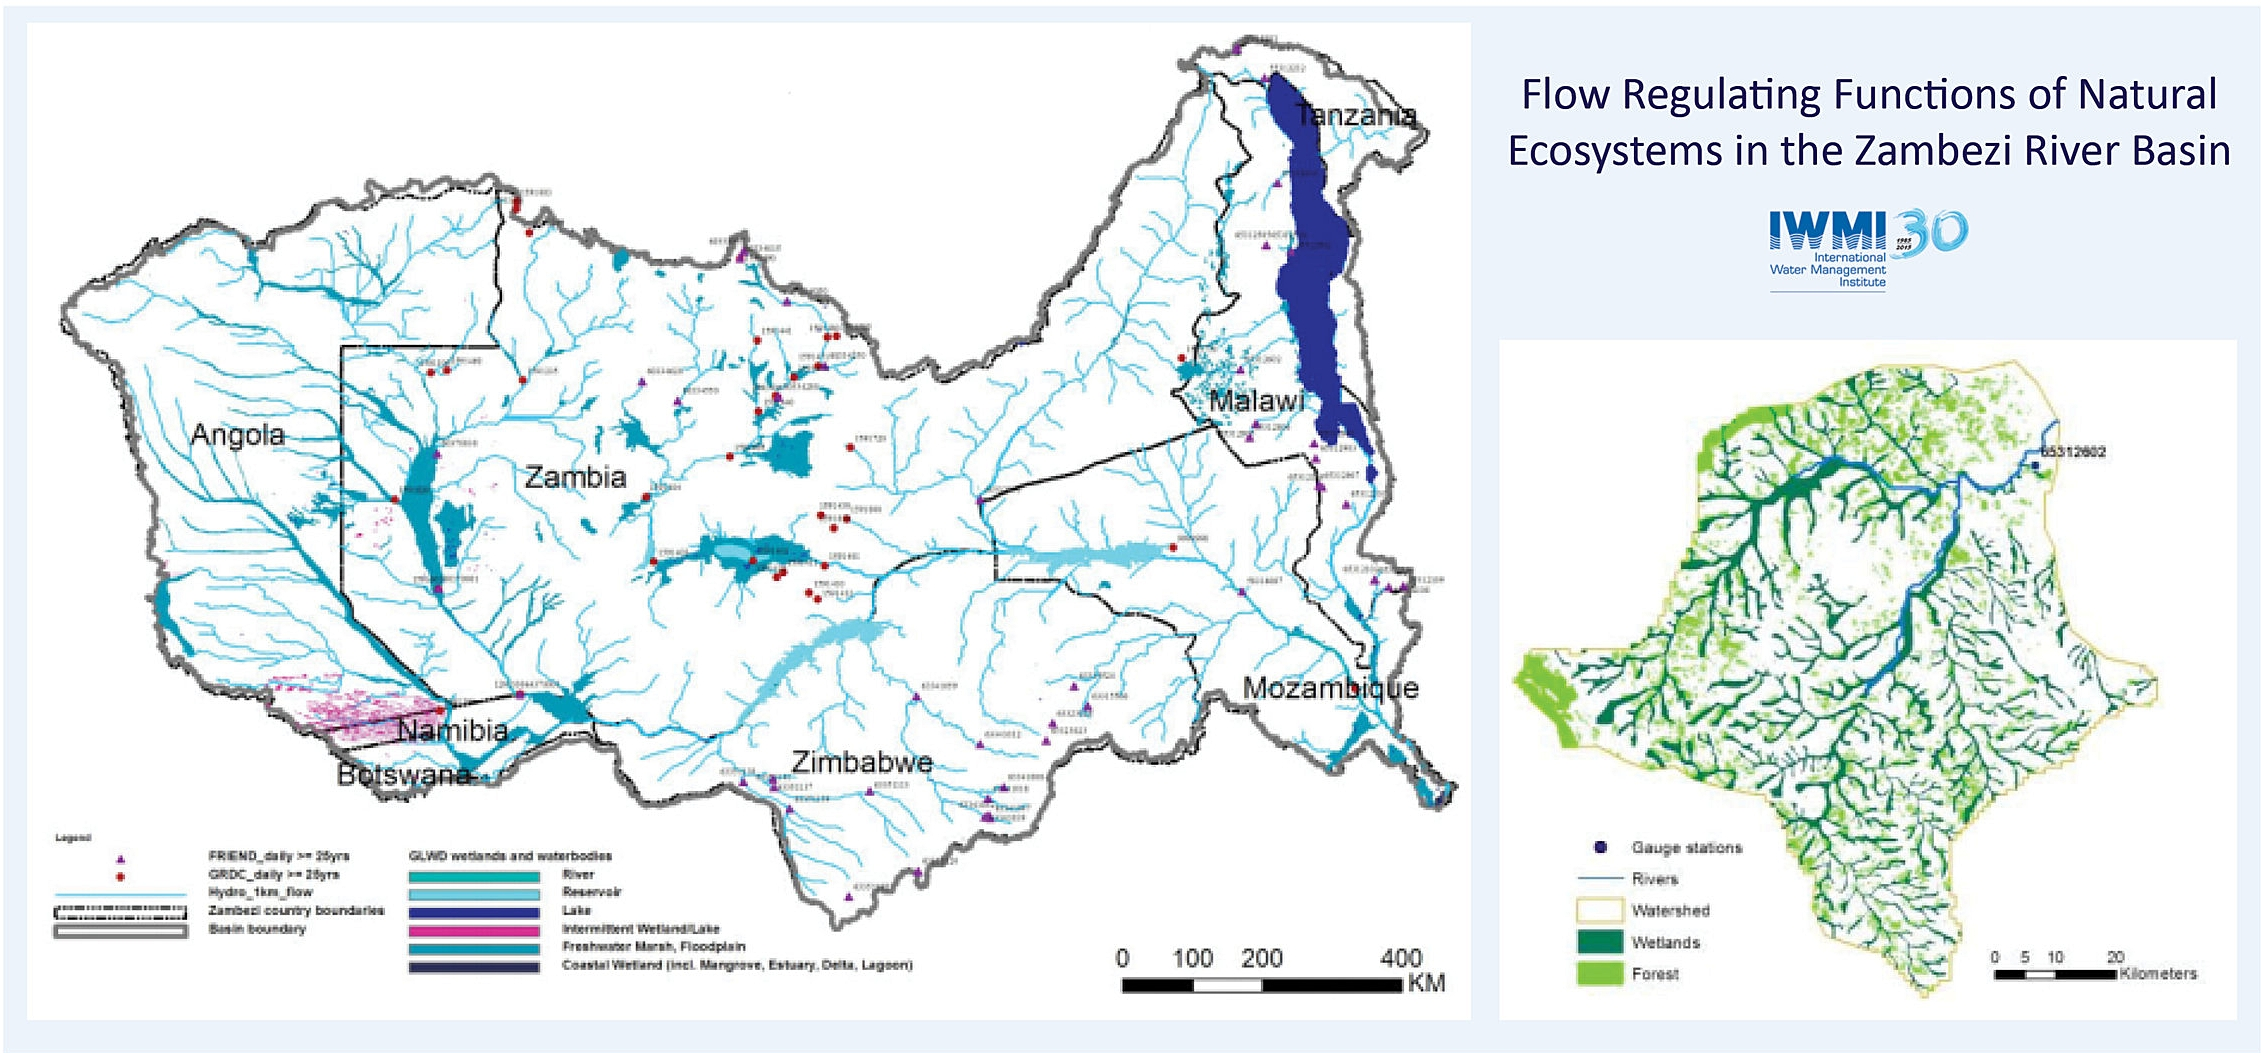 Evaluating the Flow Regulating Functions of Natural Ecosystems in the Zambezi River Basin